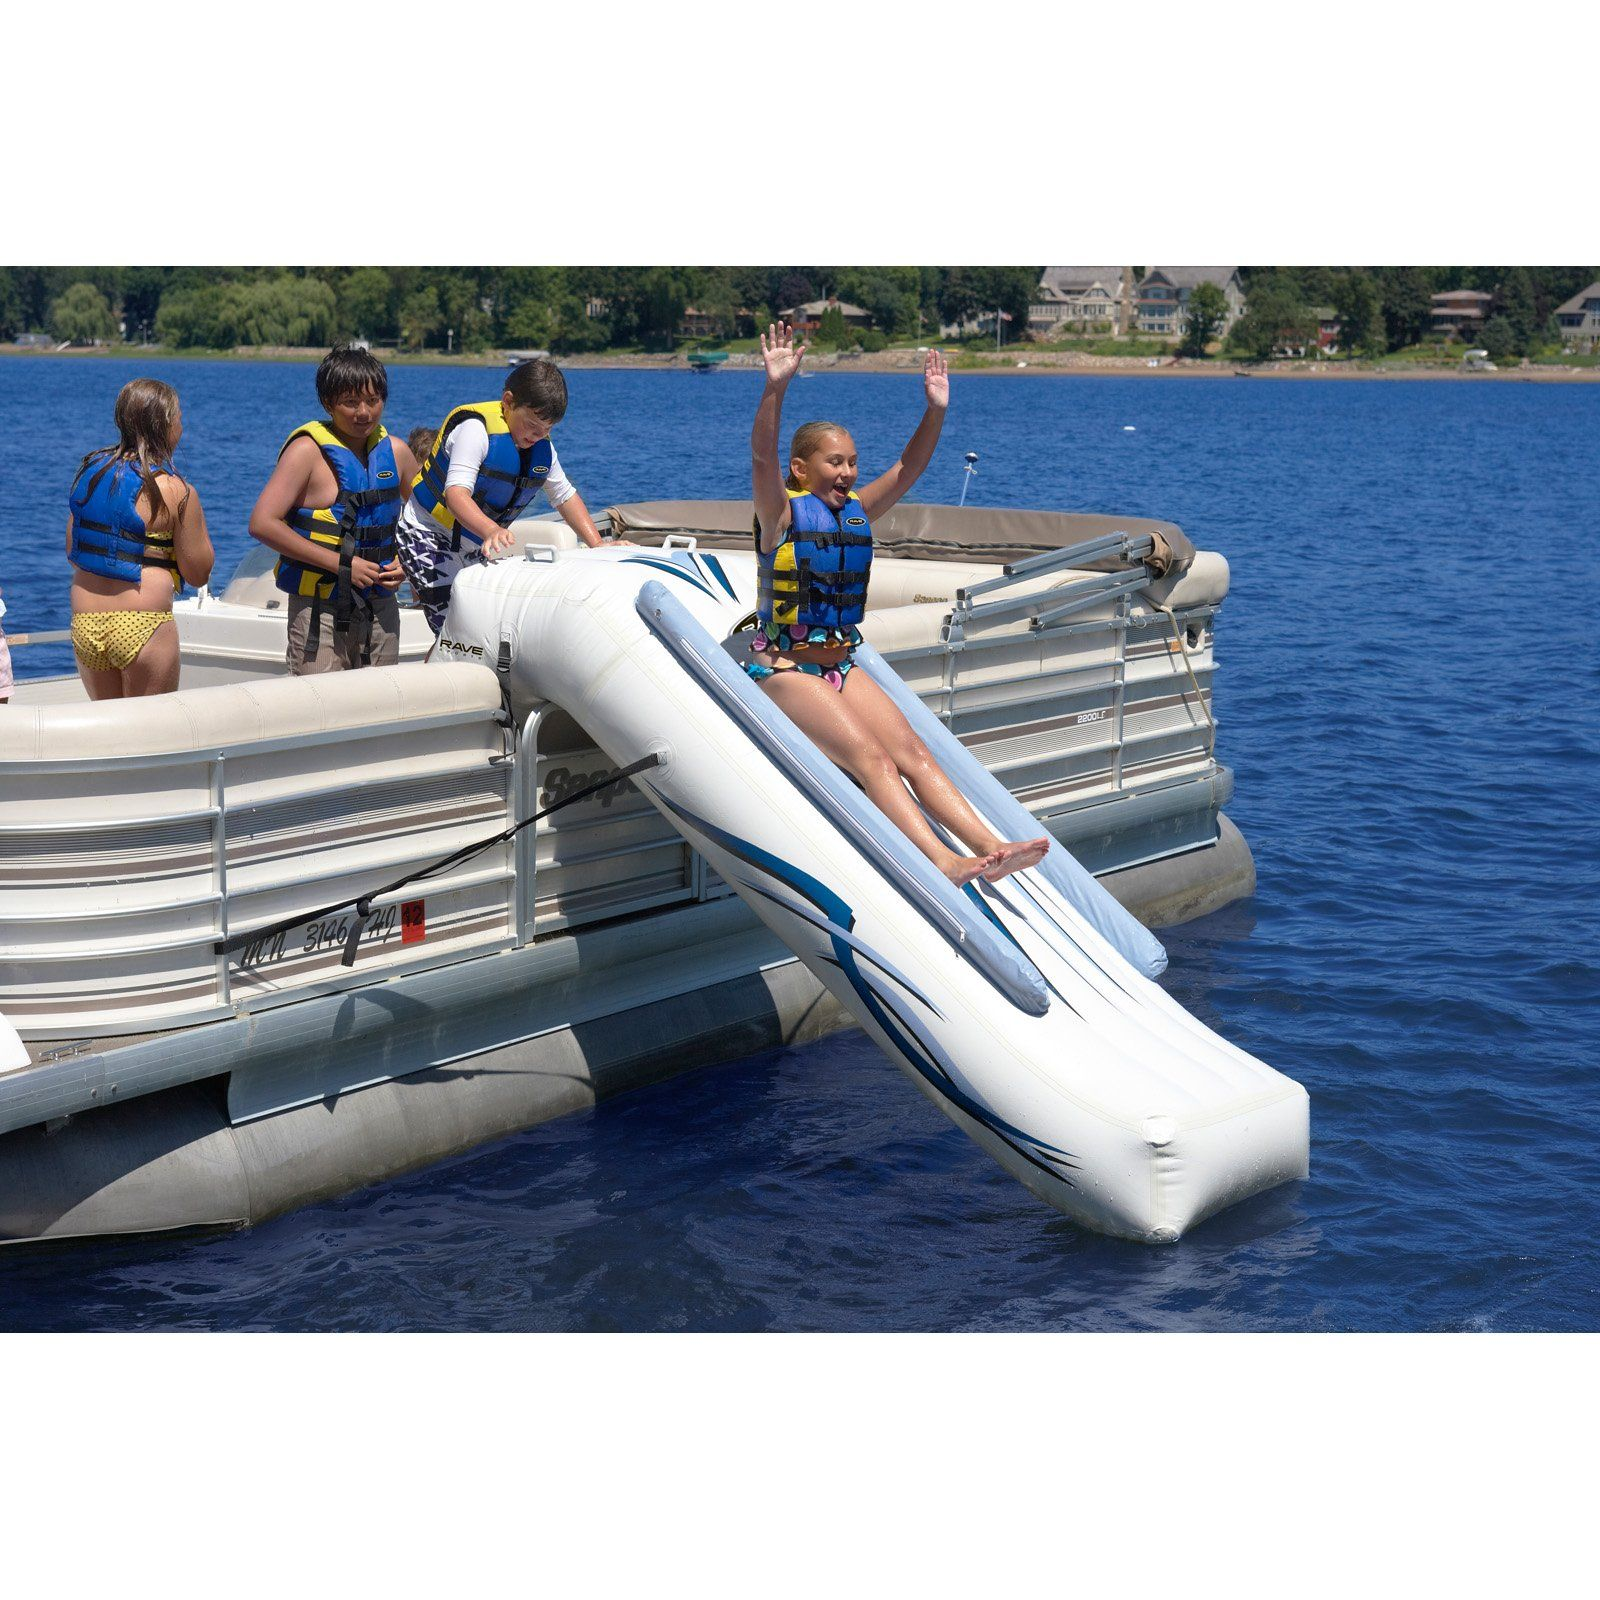 Pontoon slide that attaches directly to the side. Looks like boatloads of fun!